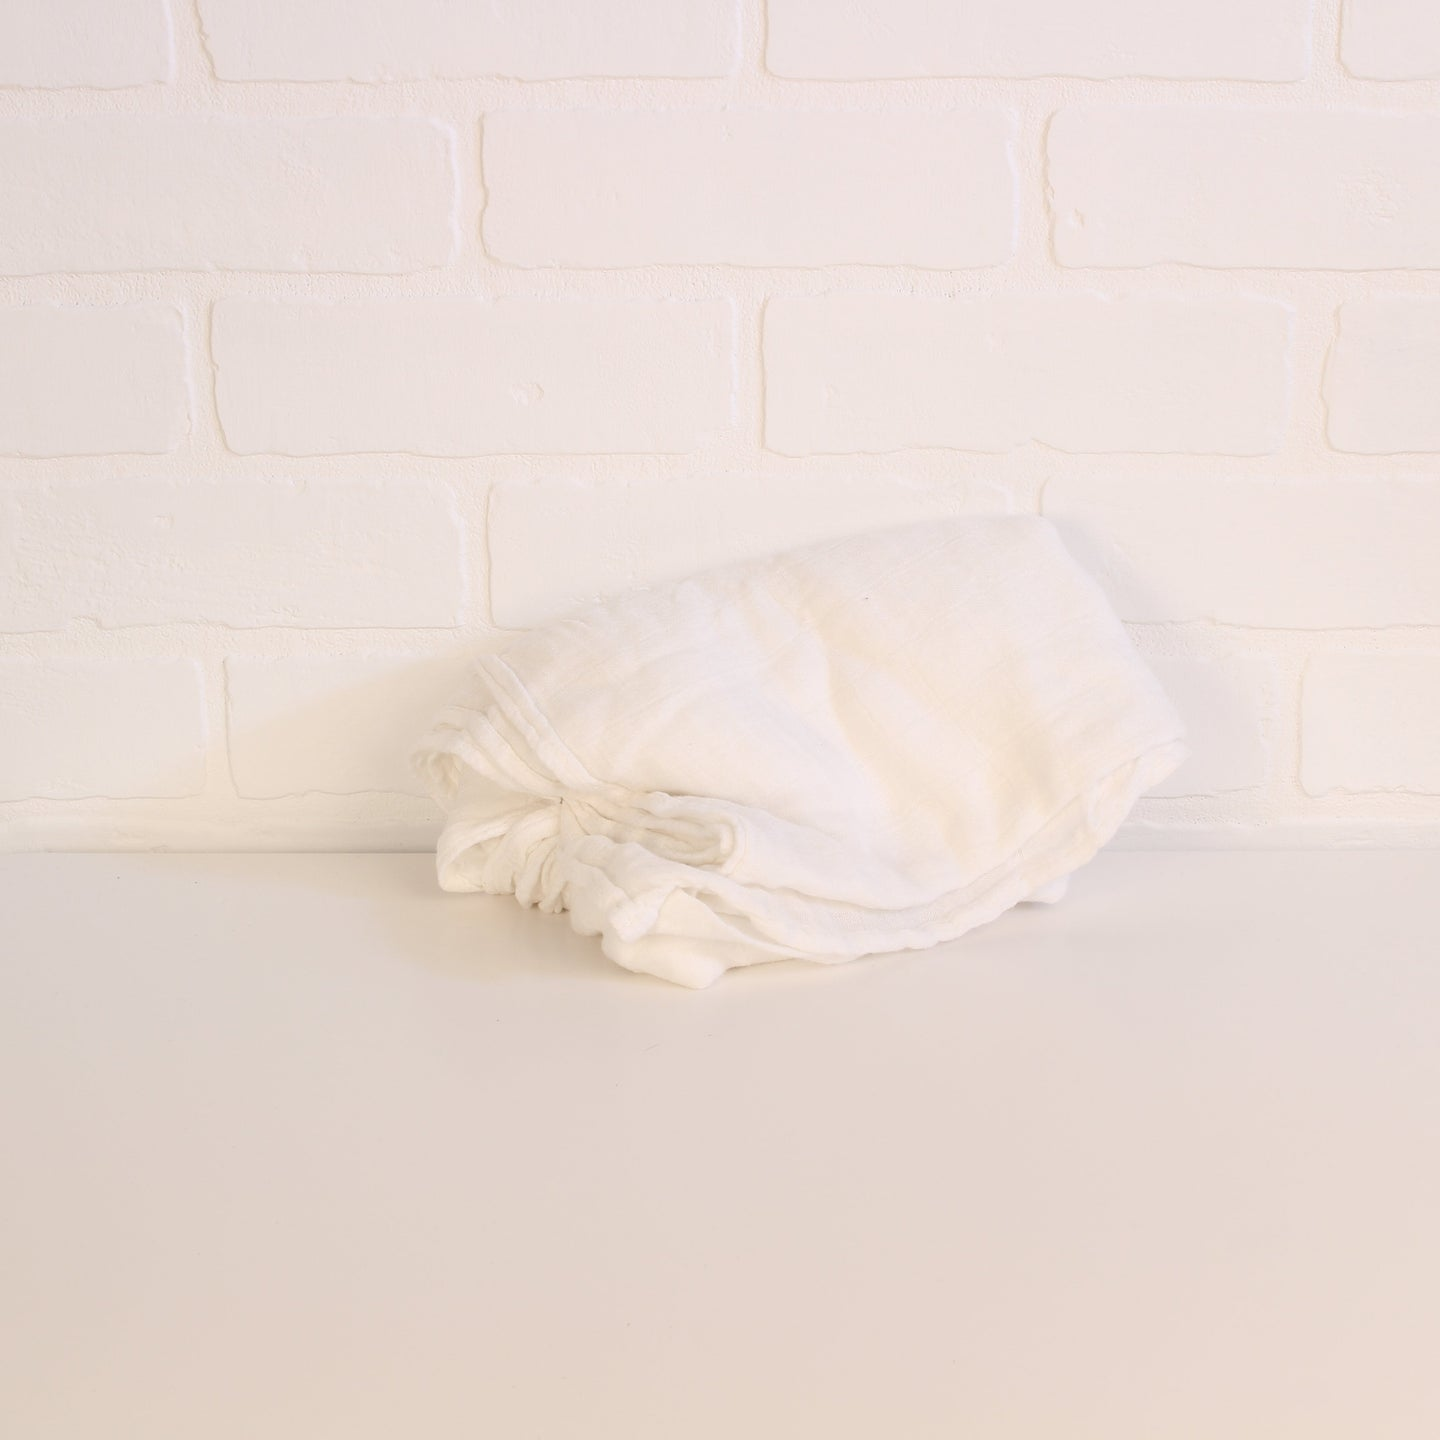 Muslin Swaddle Blanket: White on White Checked